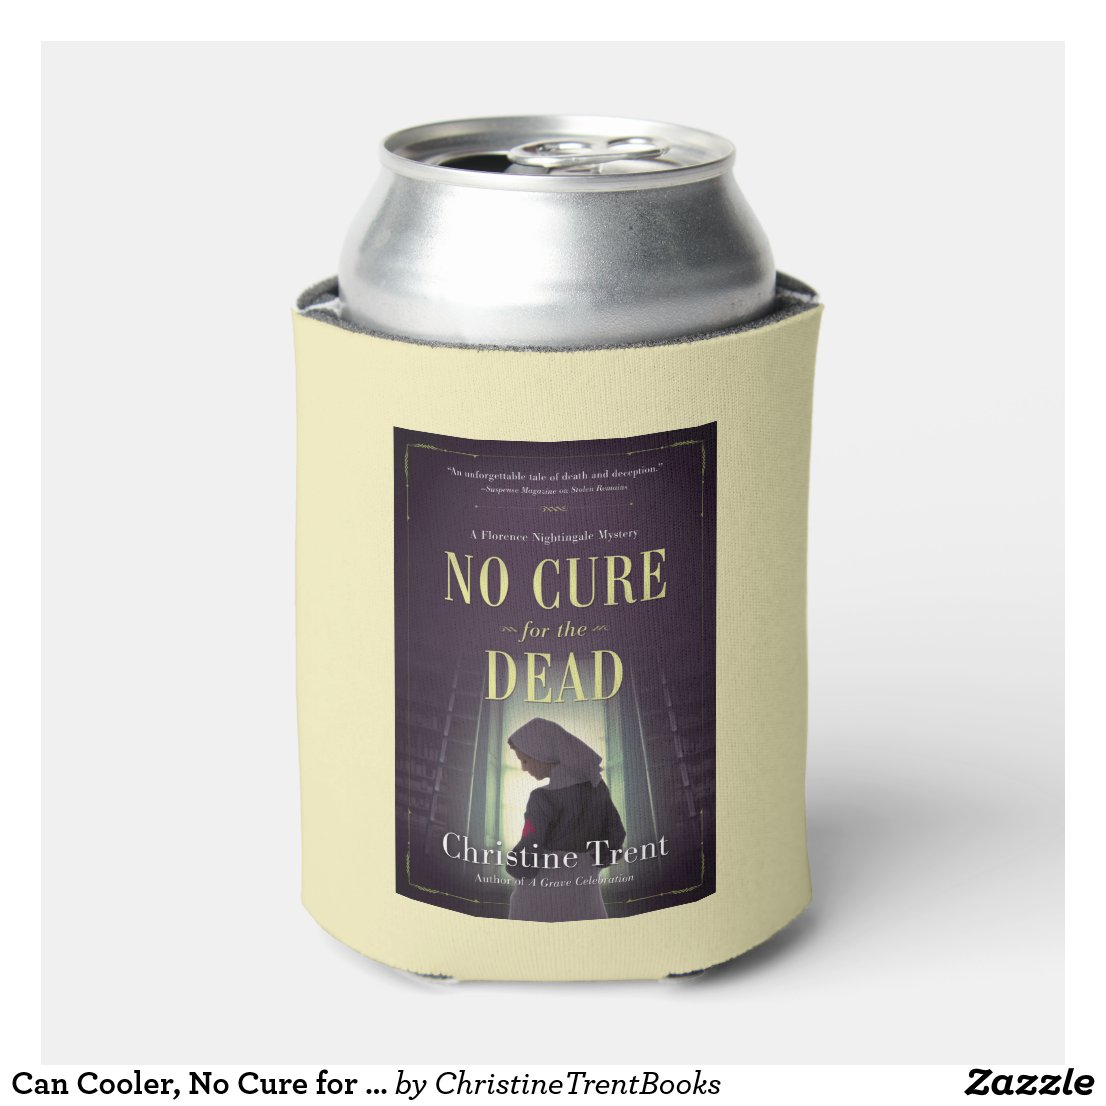 Can Cooler, No Cure for the Dead Can Cooler